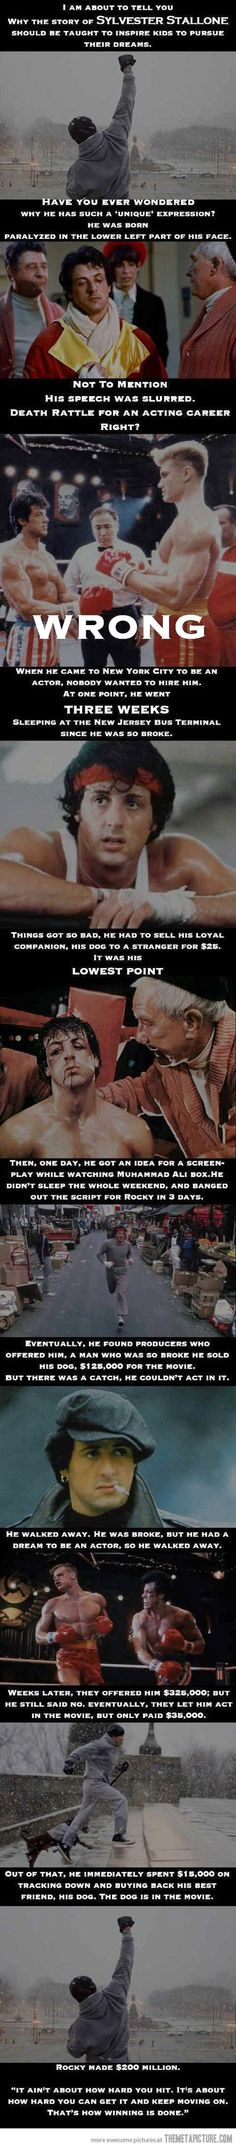 Rocky will always be number 1:)